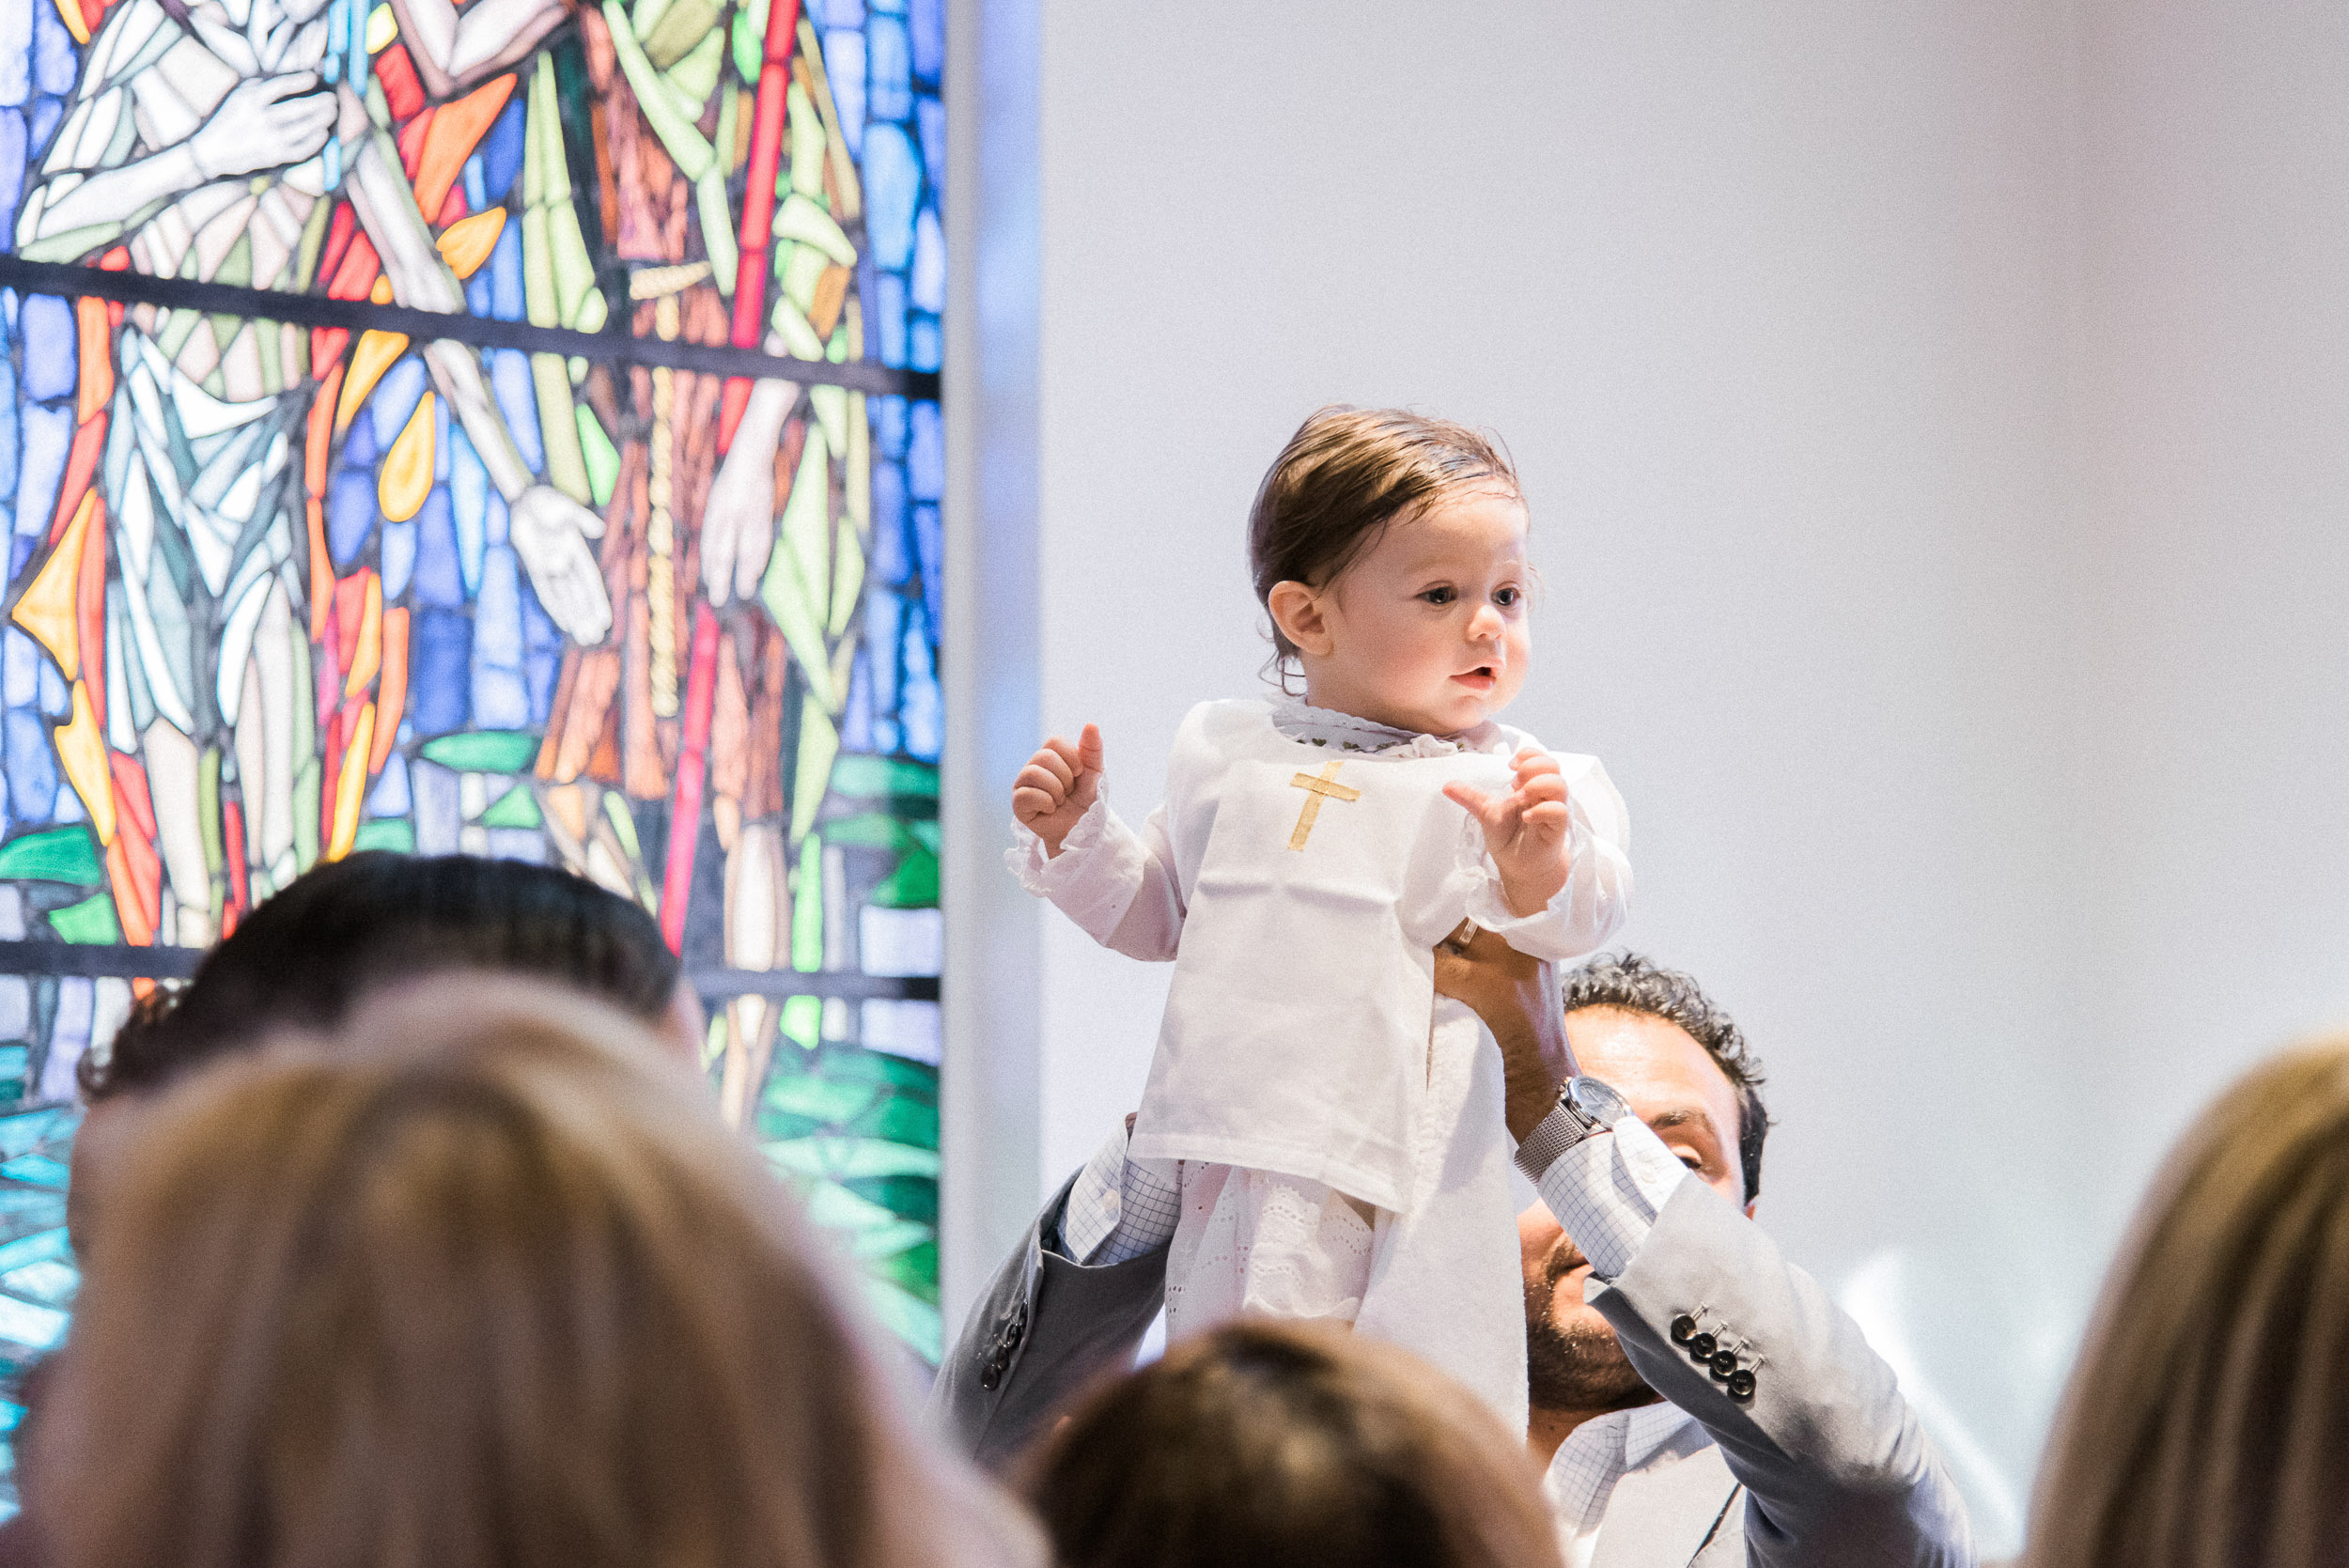 Bryan-Miraflor-Photography-Our-Lady-of-Grace-Neave-Baptism-20161009-0151.jpg